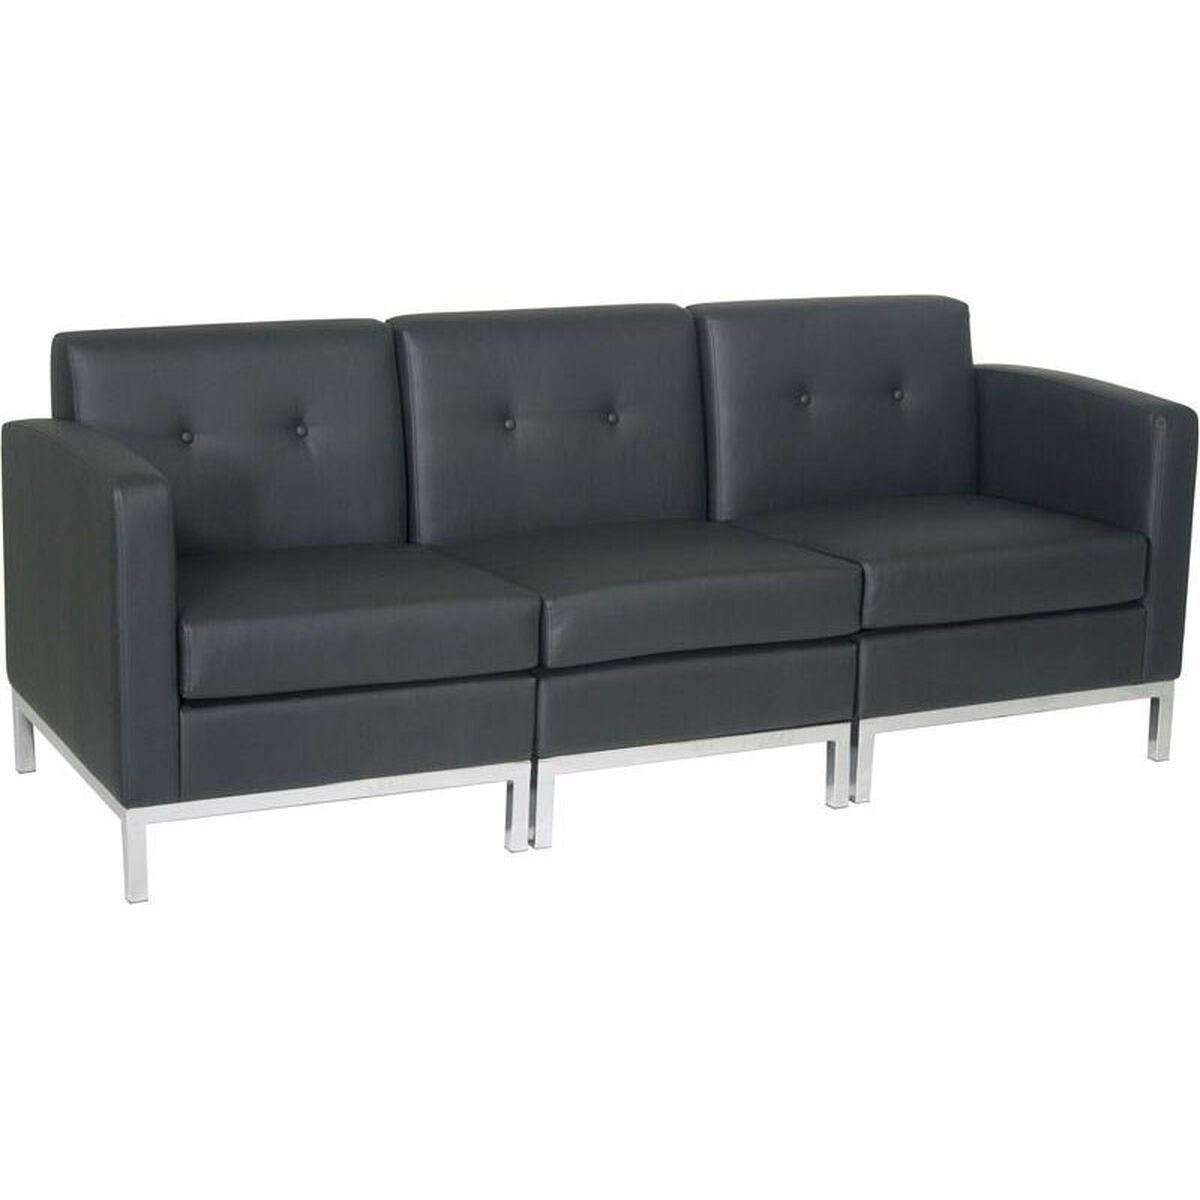 Our Ave Six Wall Street Faux Leather Modular Sofa With Chrome Finish Base Black Is